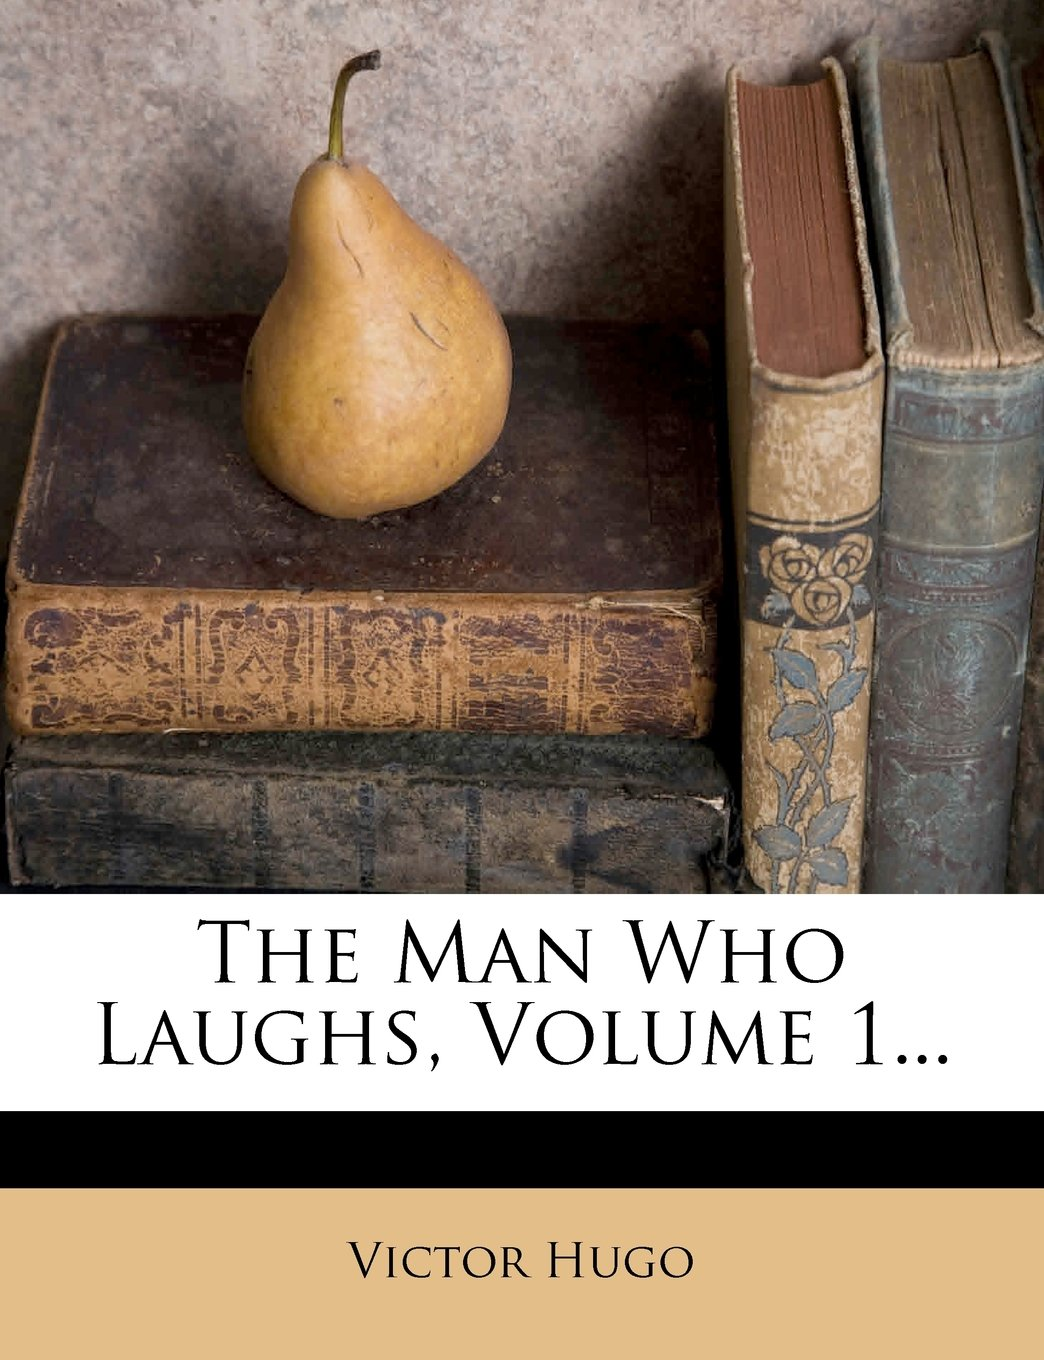 The Man Who Laughs, Volume 1... pdf